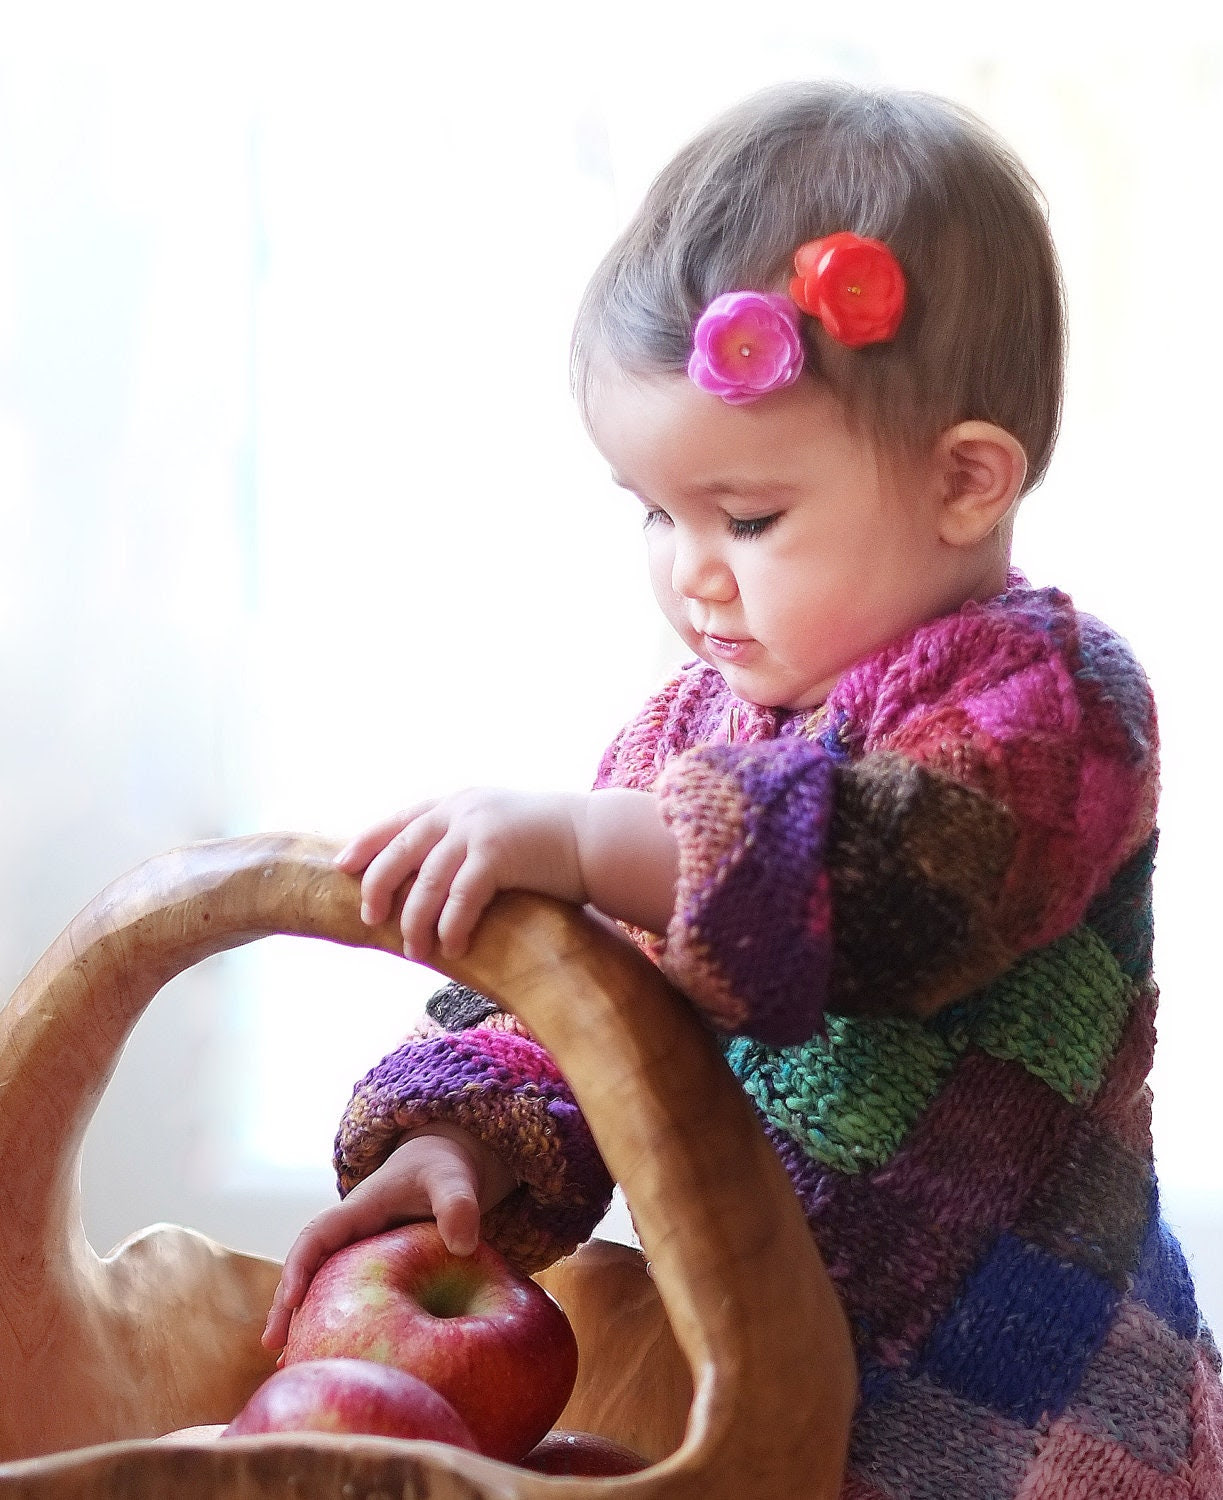 Colors of Rainbow Patch Heart Button Toddler Baby Girl Coat Sweater - 1 - 2 years old